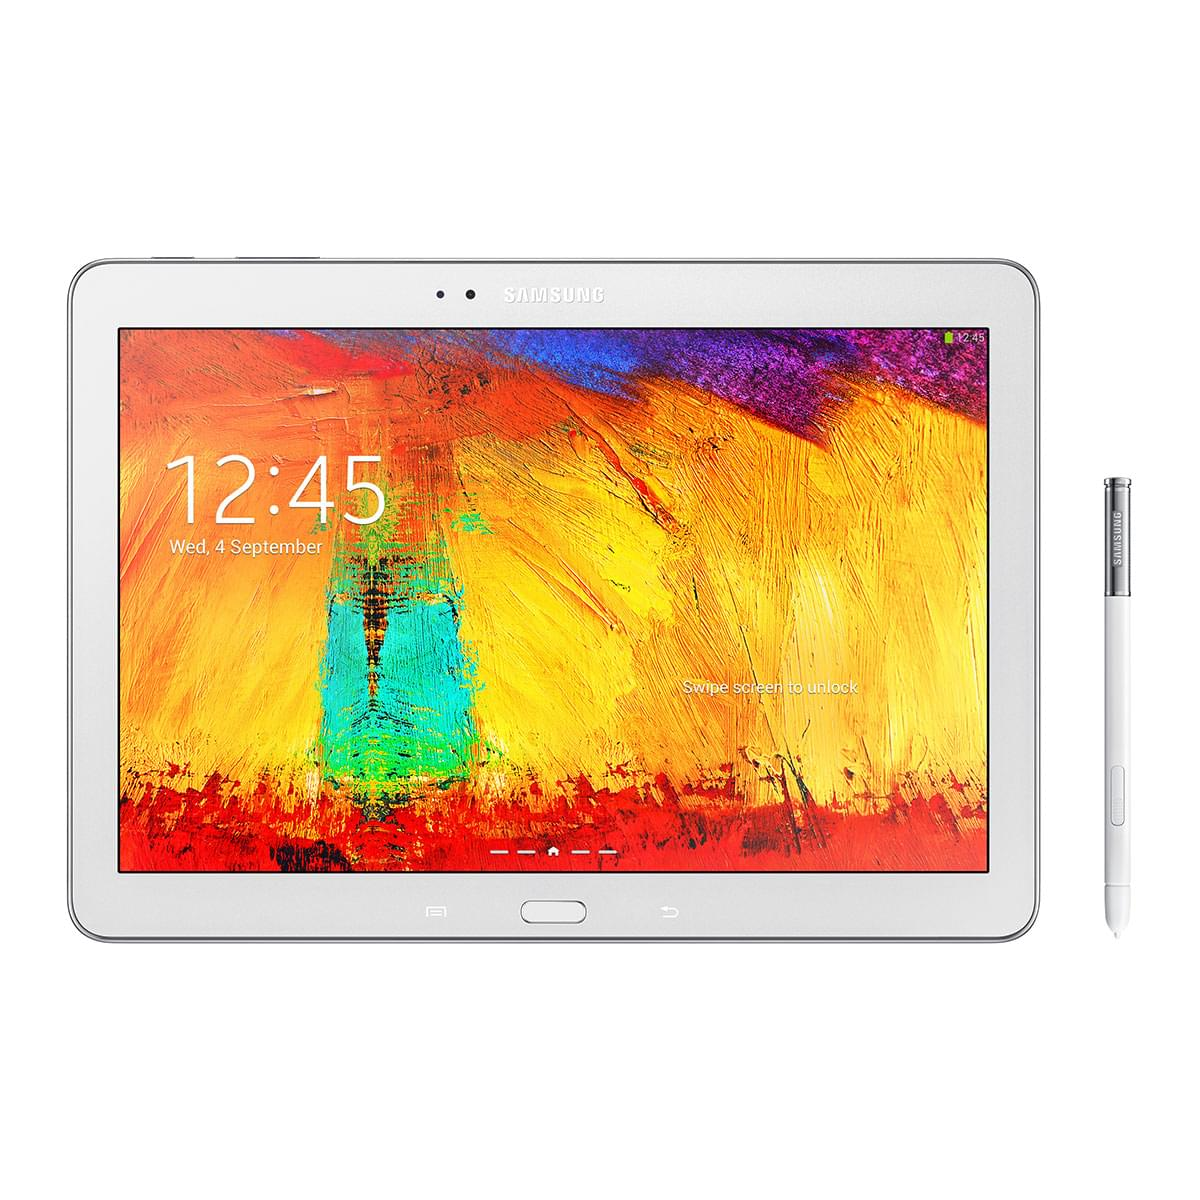 Samsung Galaxy Note 10.1 2014 P6000ZWA - Tablette tactile Samsung - 0